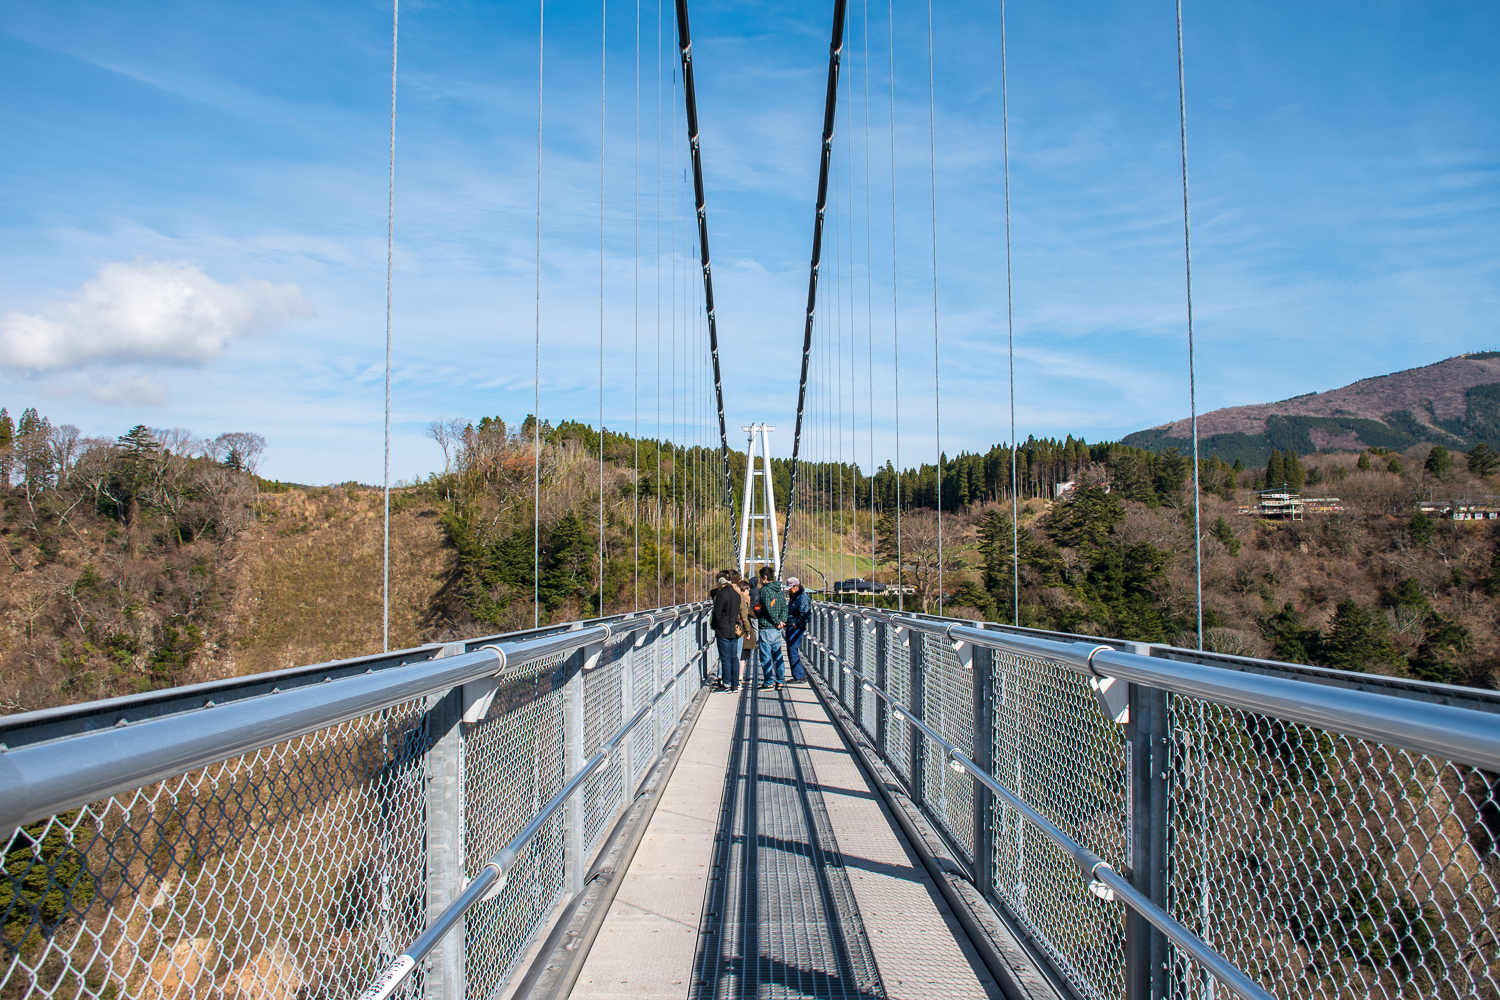 Rods and metal of suspension bridge in japan